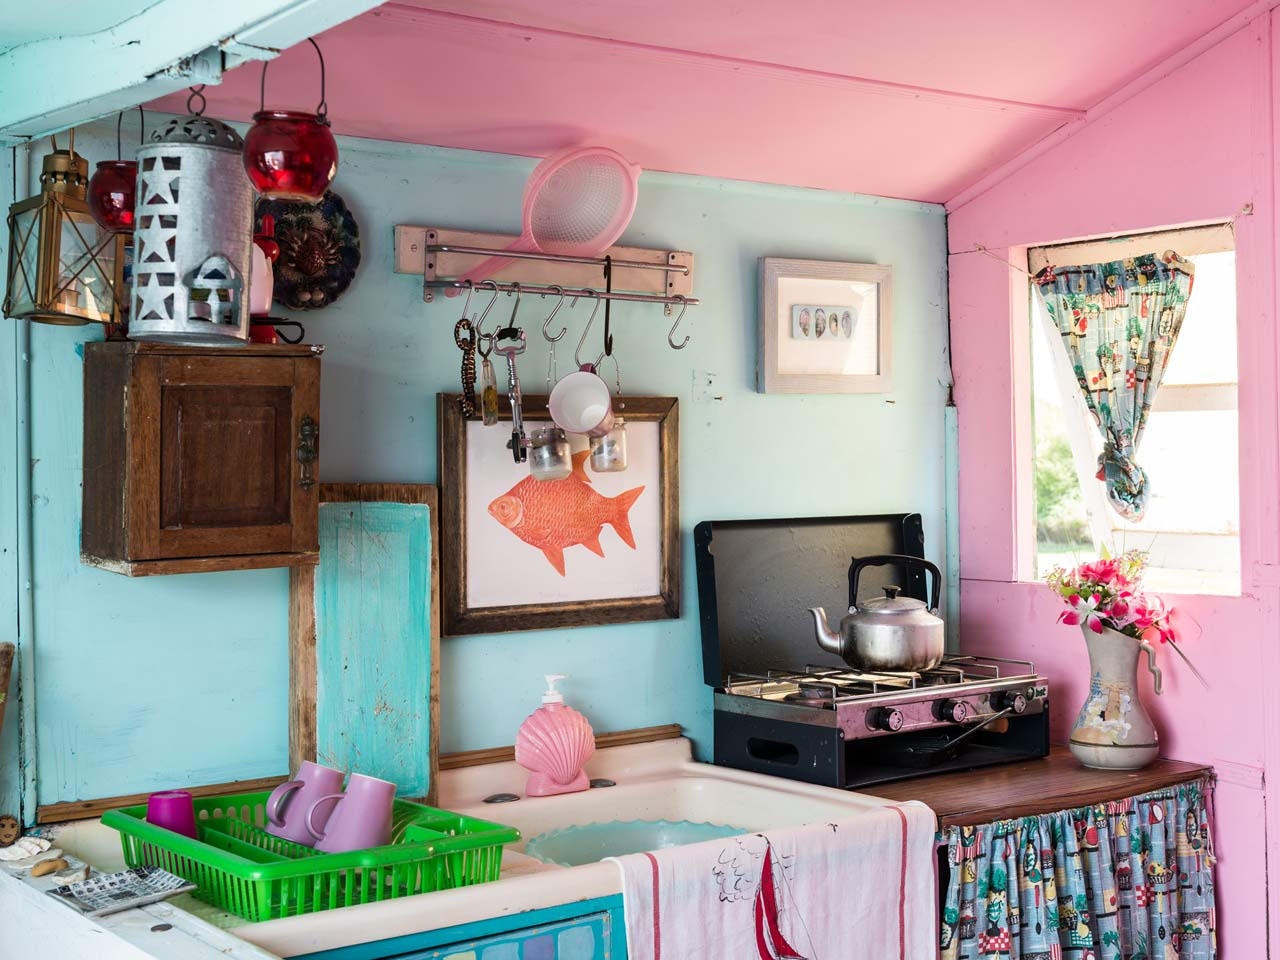 Interiors inside jo oakley 39 s beach hut saga for Beach hut interior ideas